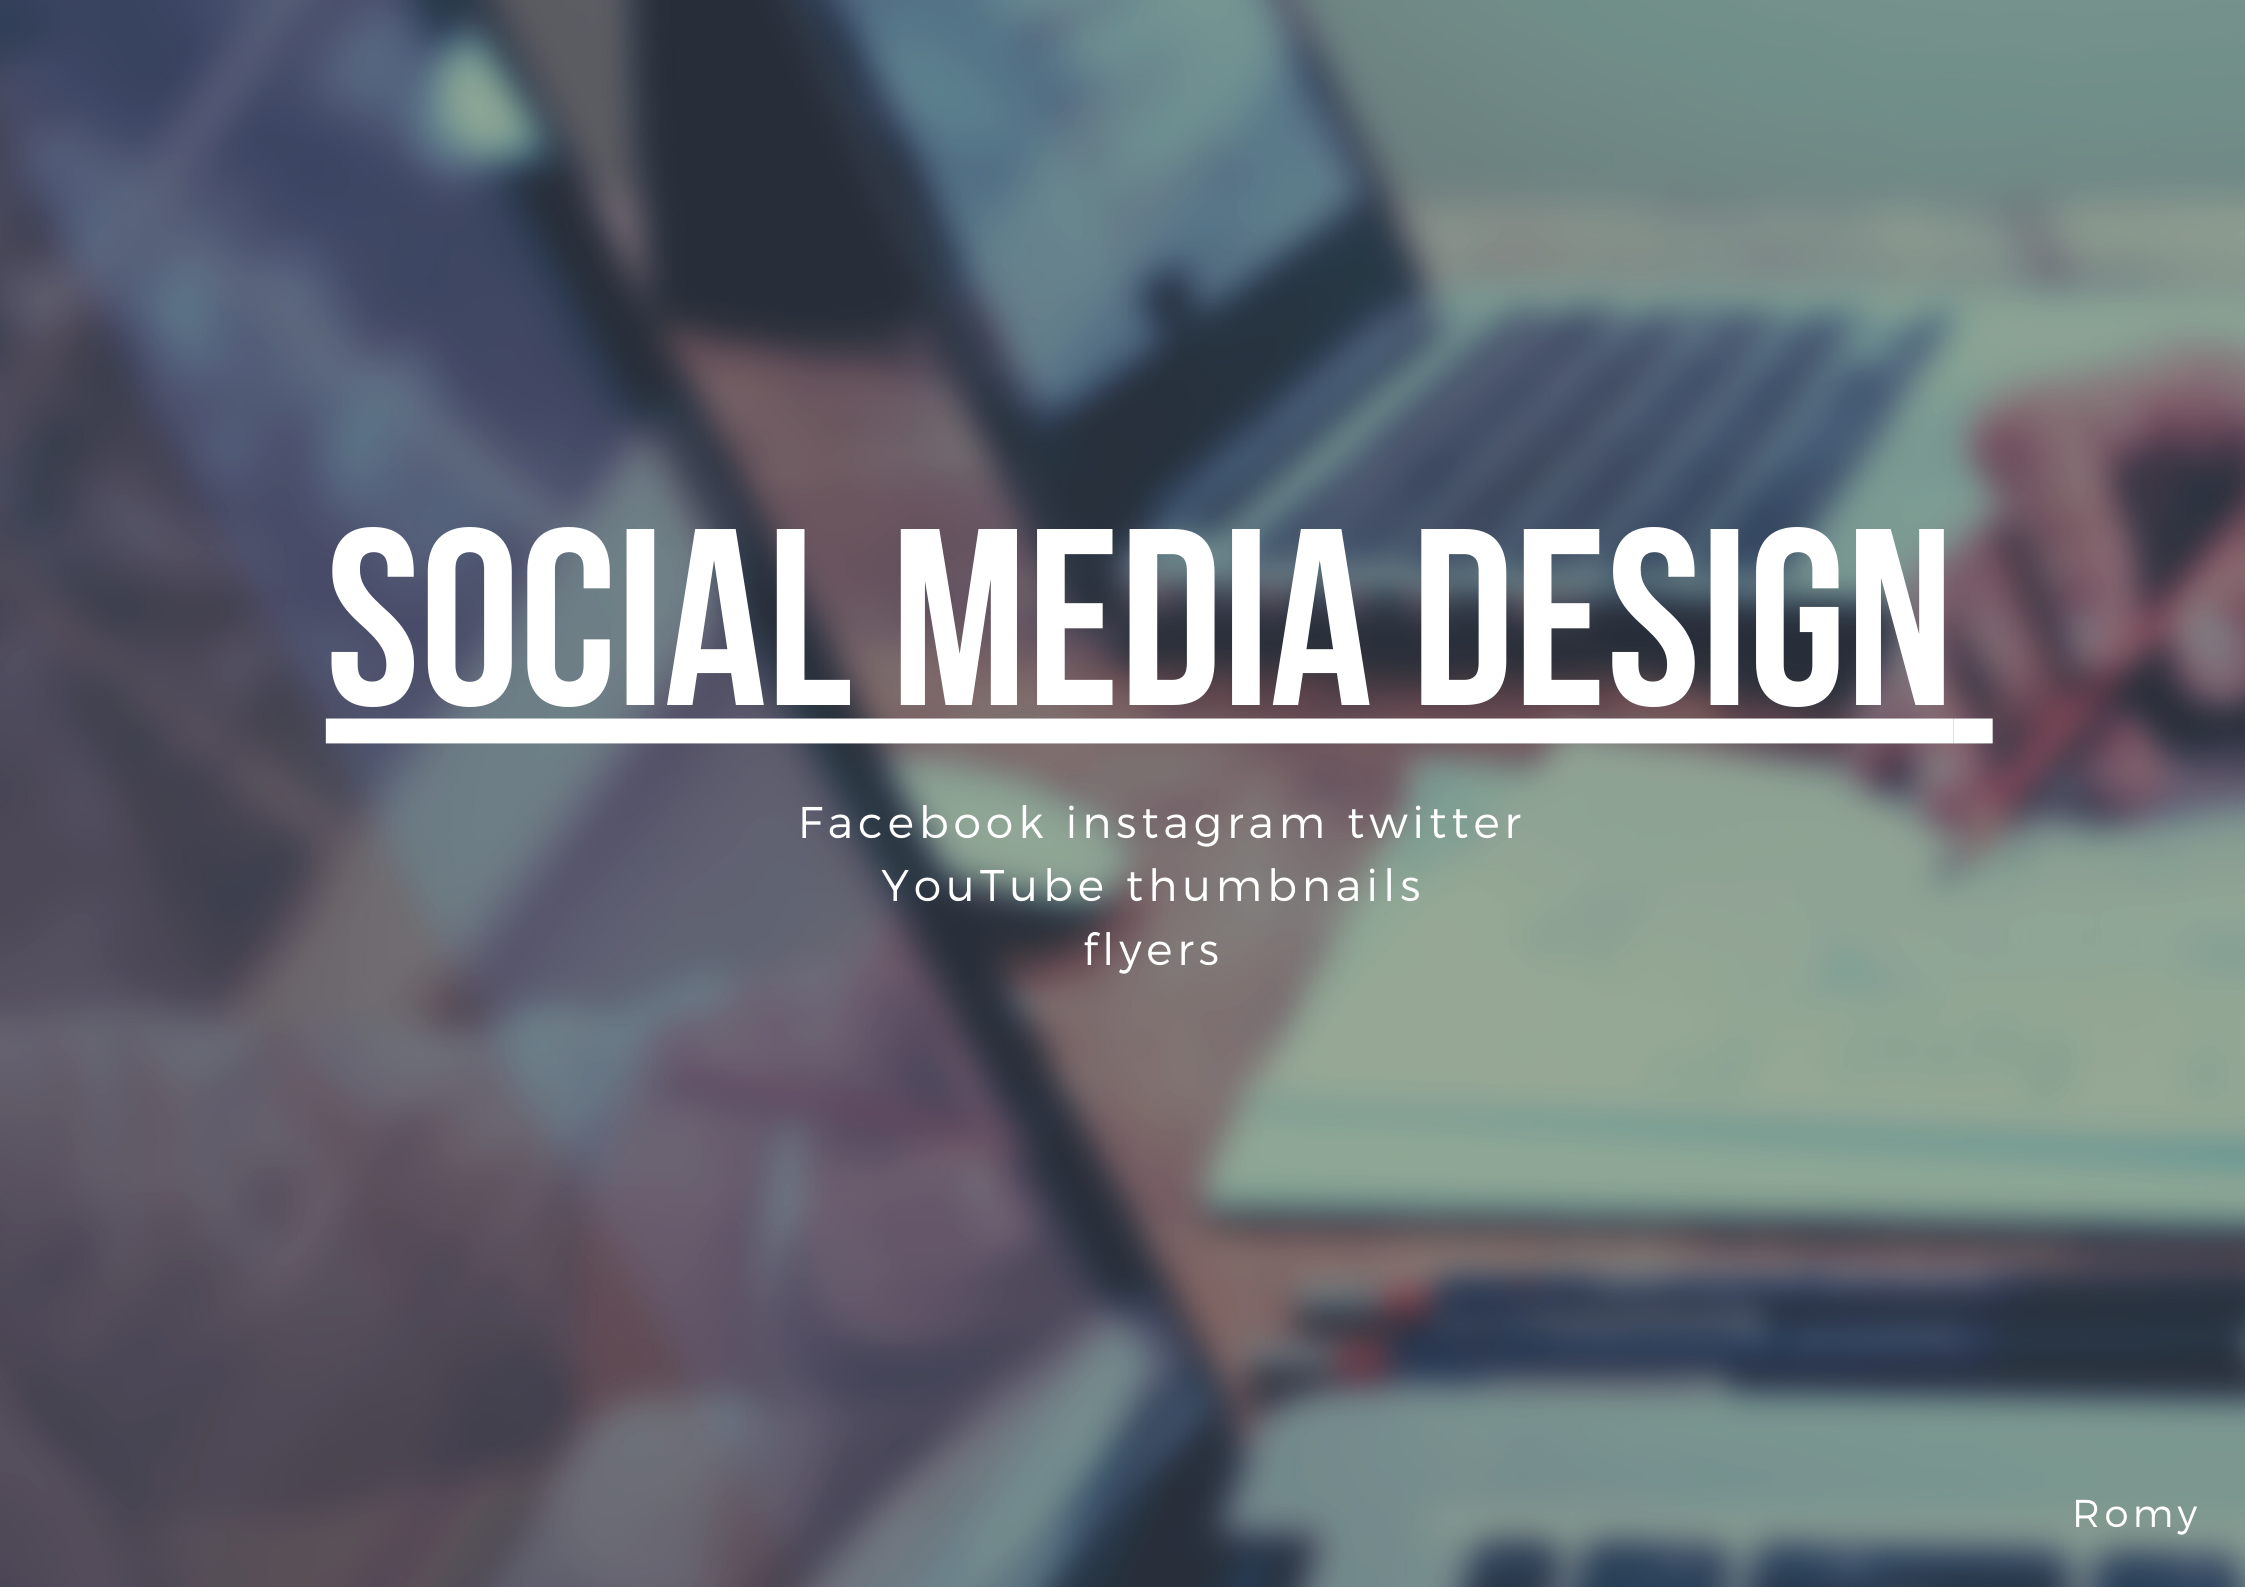 Social media posts and any contents designing